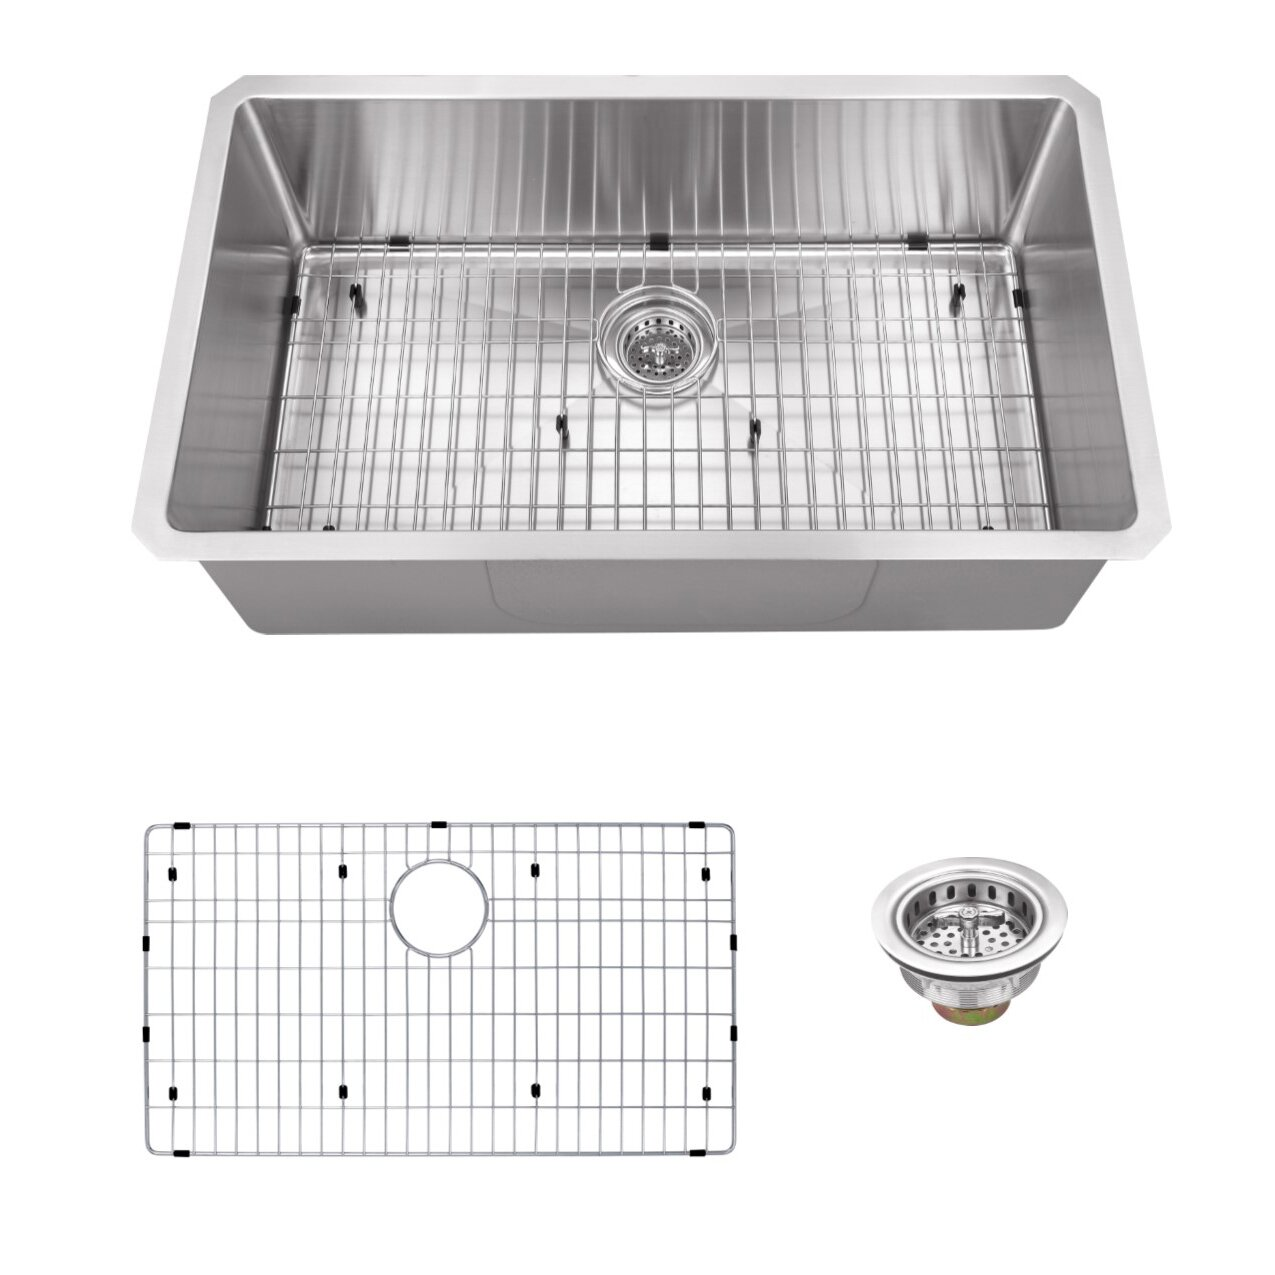 32 x 19 stainless steel 16 gauge radius single bowl kitchen sink - White Single Basin Kitchen Sink